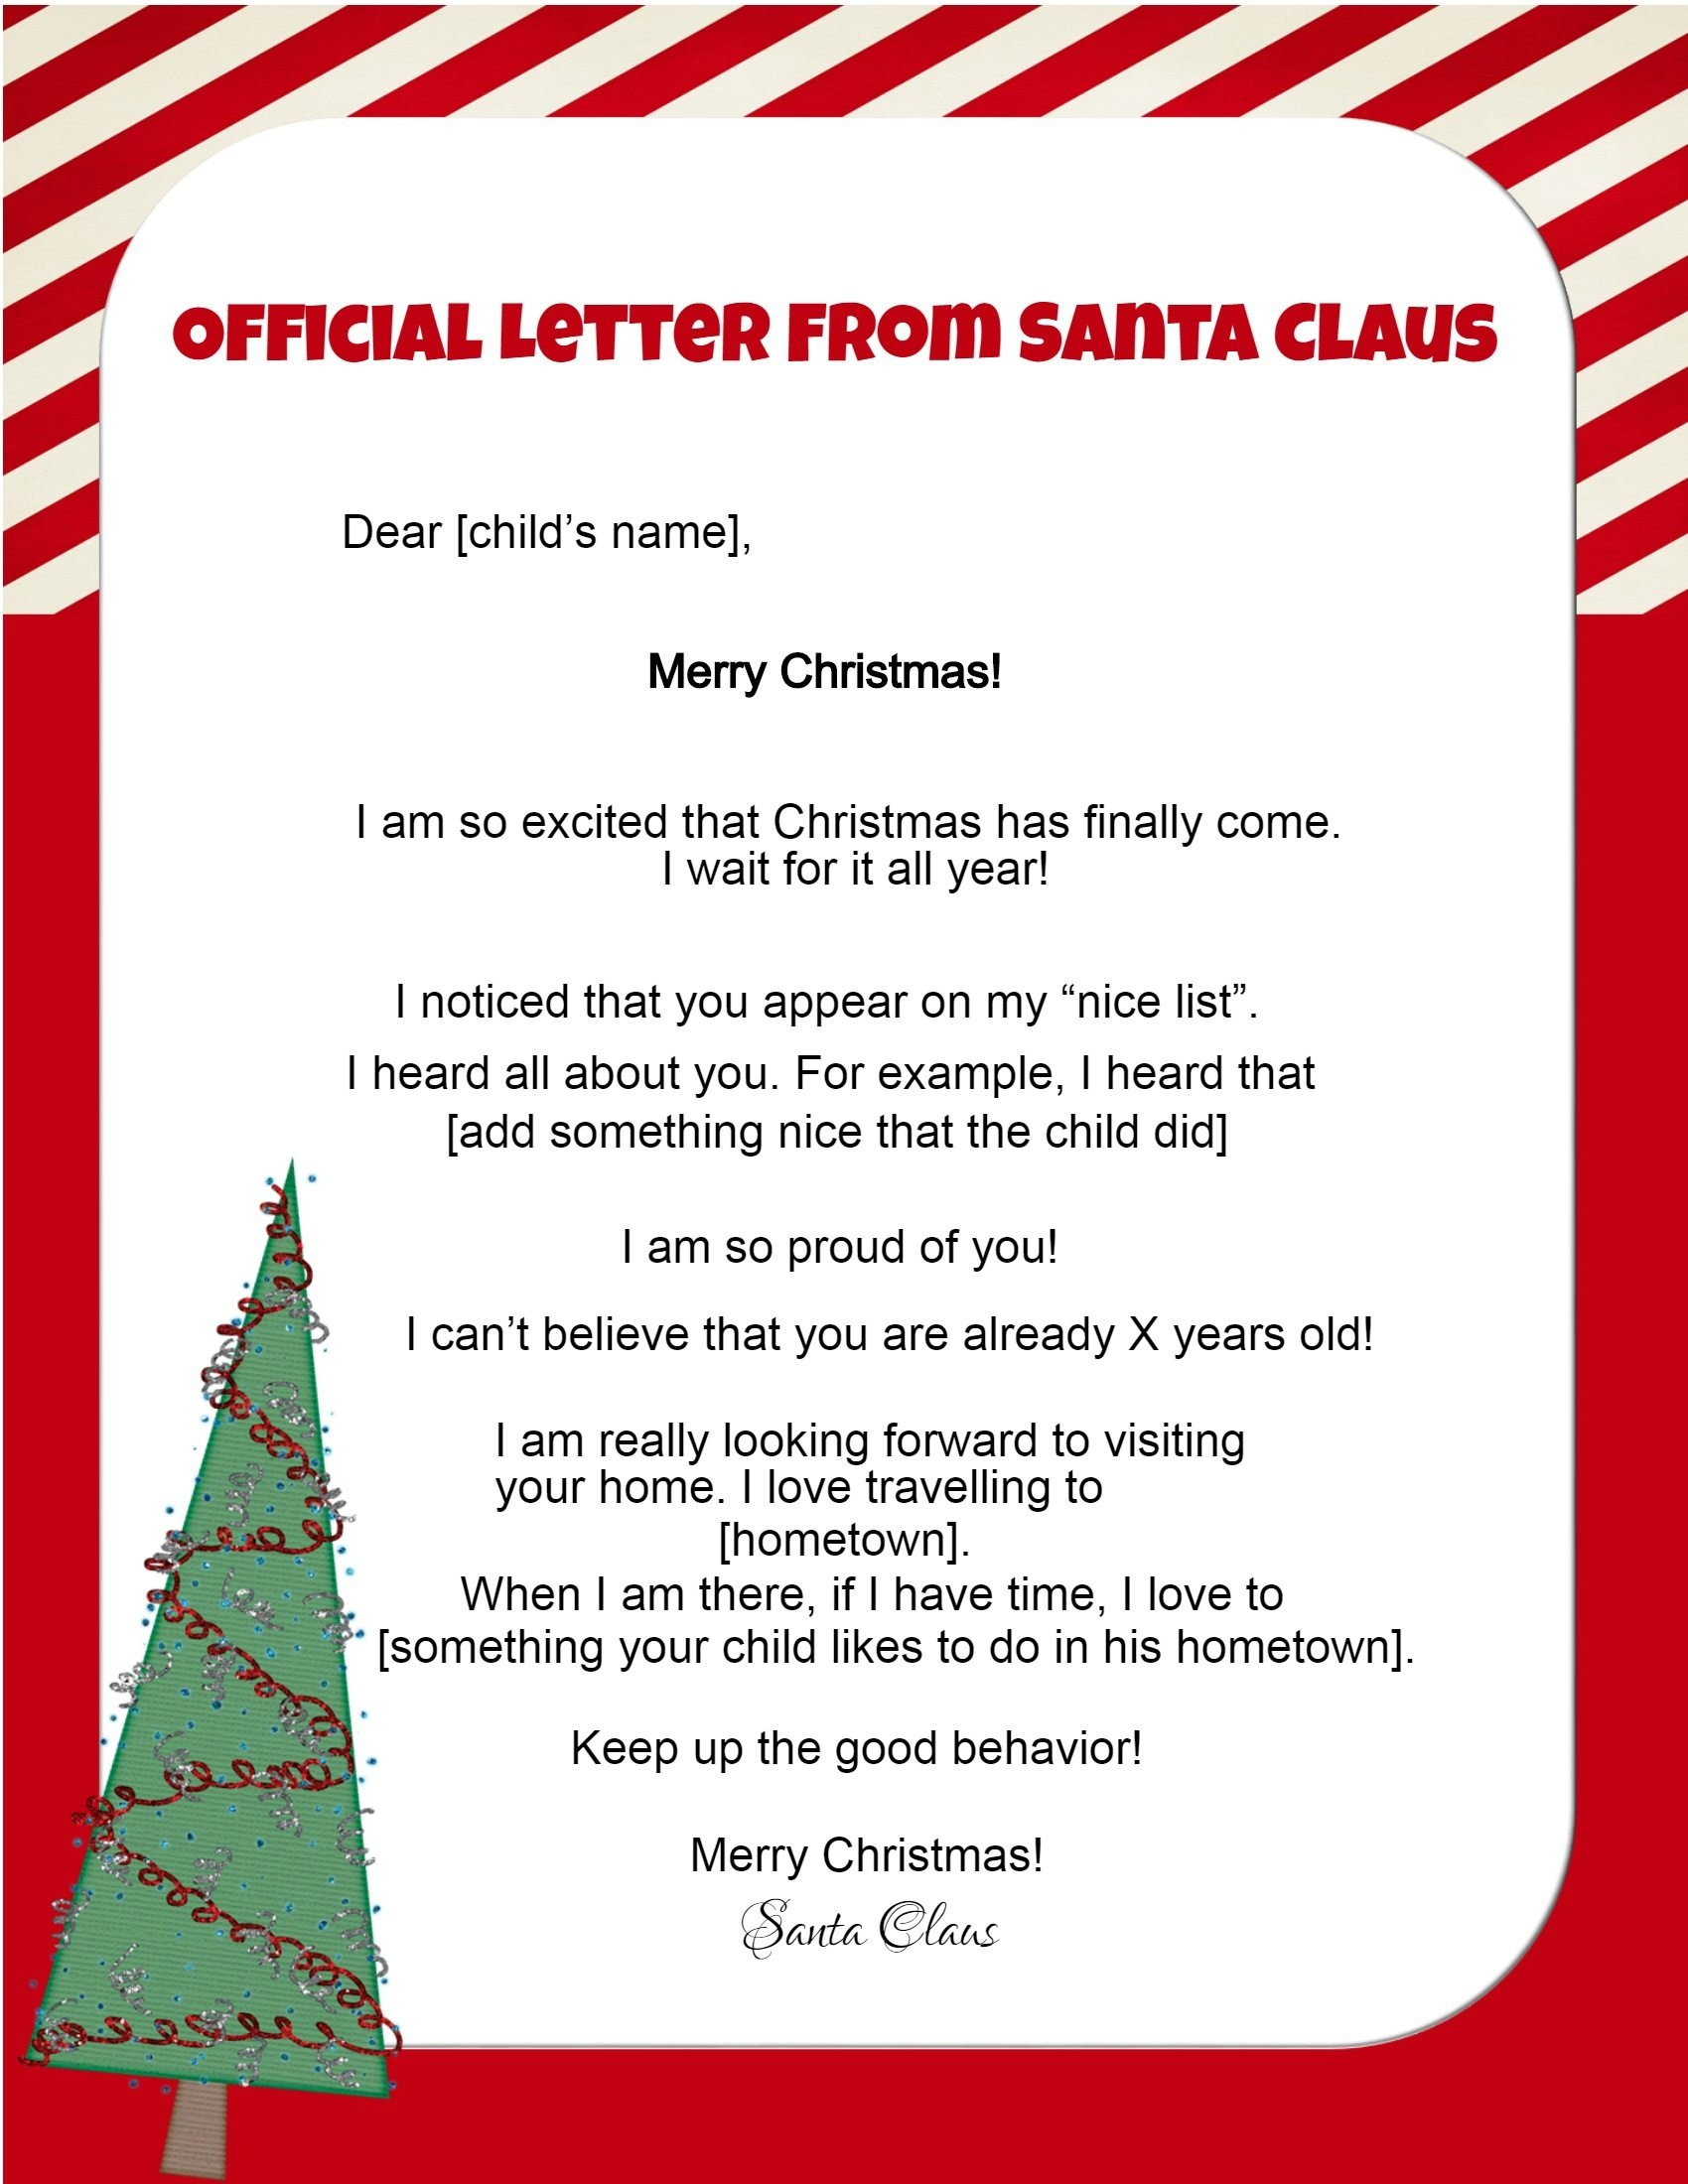 Free Letters From Santa - Free Personalized Printable Letters From Santa Claus